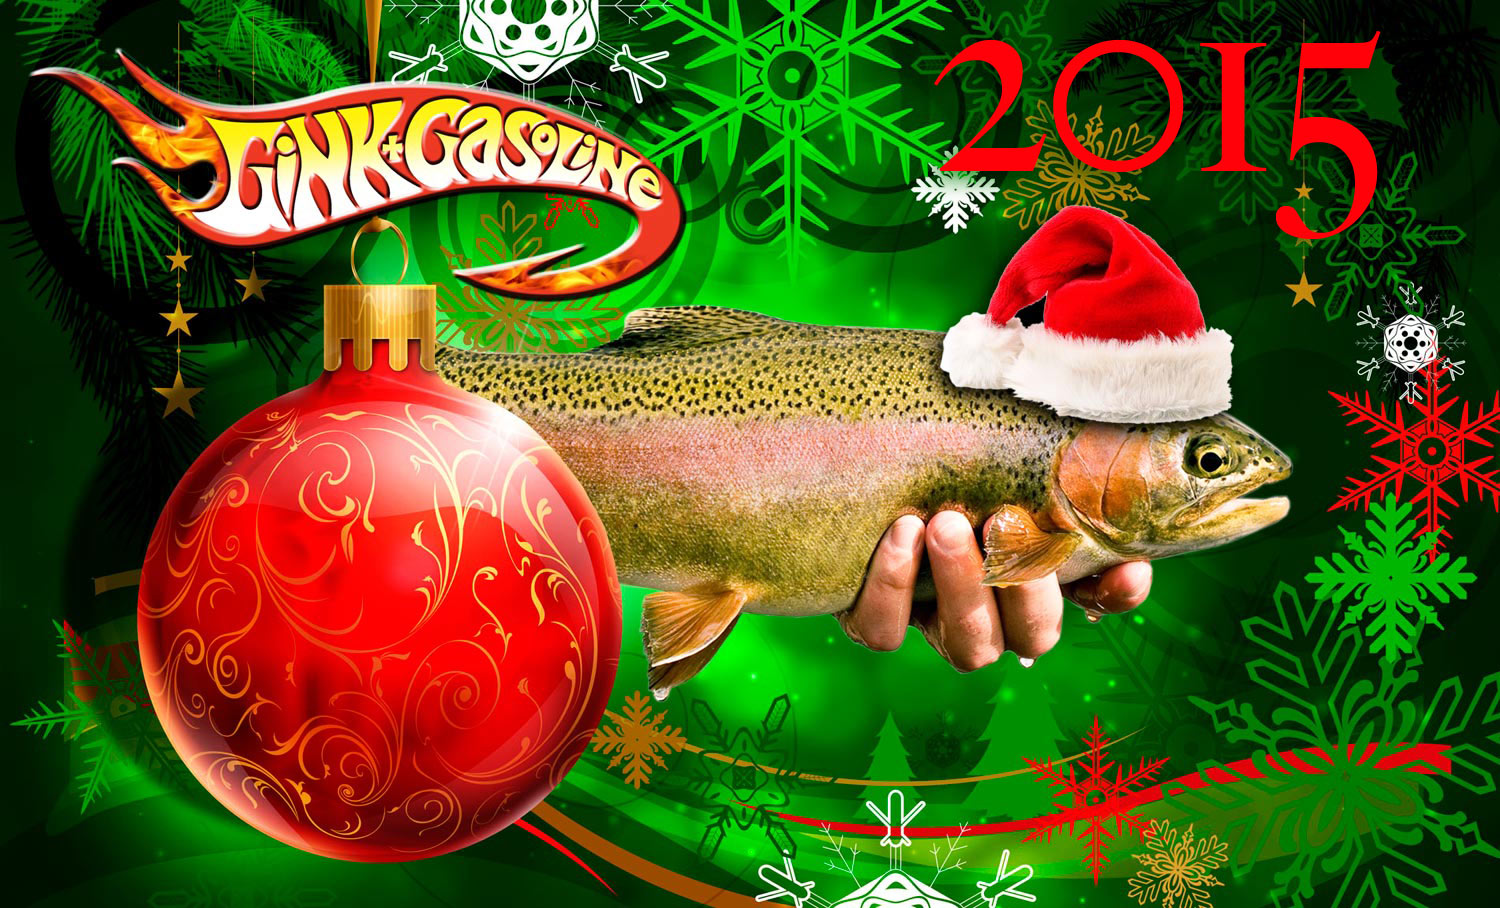 Make Your Own Iphone 5 Wallpaper 2015 Holiday Gift Guide Fly Fishing Gink And Gasoline